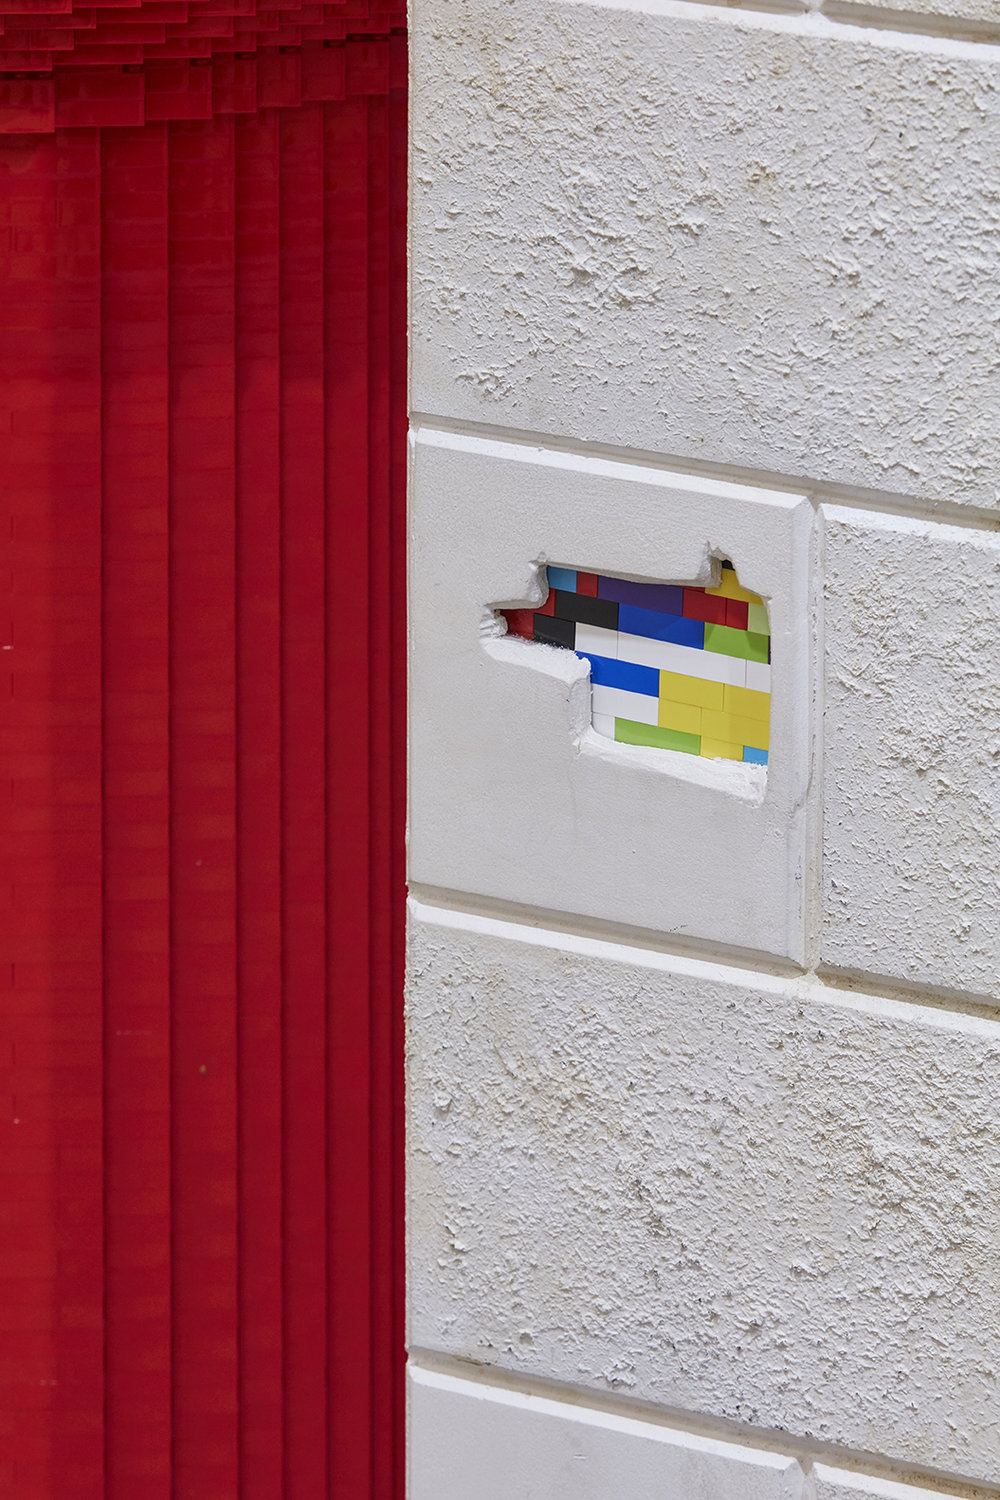 False wall cladding with some chipped away revealing LEGO bricks